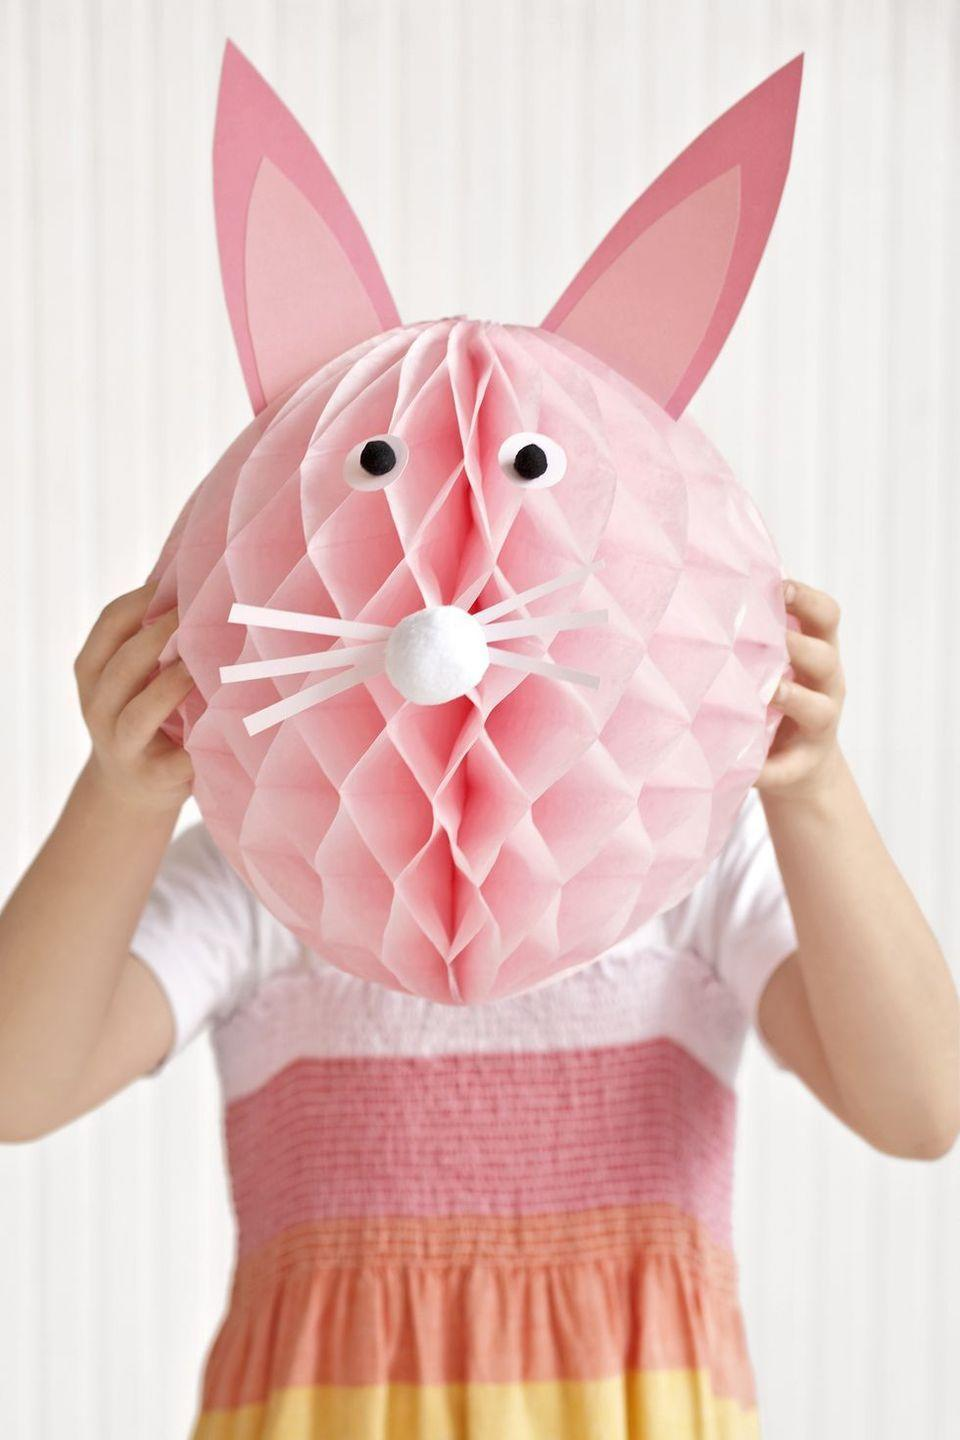 """<p>Need to keep kids occupied? Have them add ears, nose, and eyes to a pink crepe paper ball to make a cute, photo-worthy bunny face.</p><p><strong><a class=""""link rapid-noclick-resp"""" href=""""https://www.amazon.com/Just-Artifacts-Premium-Crepe-Paper/dp/B01F5VJ4TG/?tag=syn-yahoo-20&ascsubtag=%5Bartid%7C10070.g.1751%5Bsrc%7Cyahoo-us"""" rel=""""nofollow noopener"""" target=""""_blank"""" data-ylk=""""slk:SHOP CREPE PAPER"""">SHOP CREPE PAPER</a></strong></p>"""